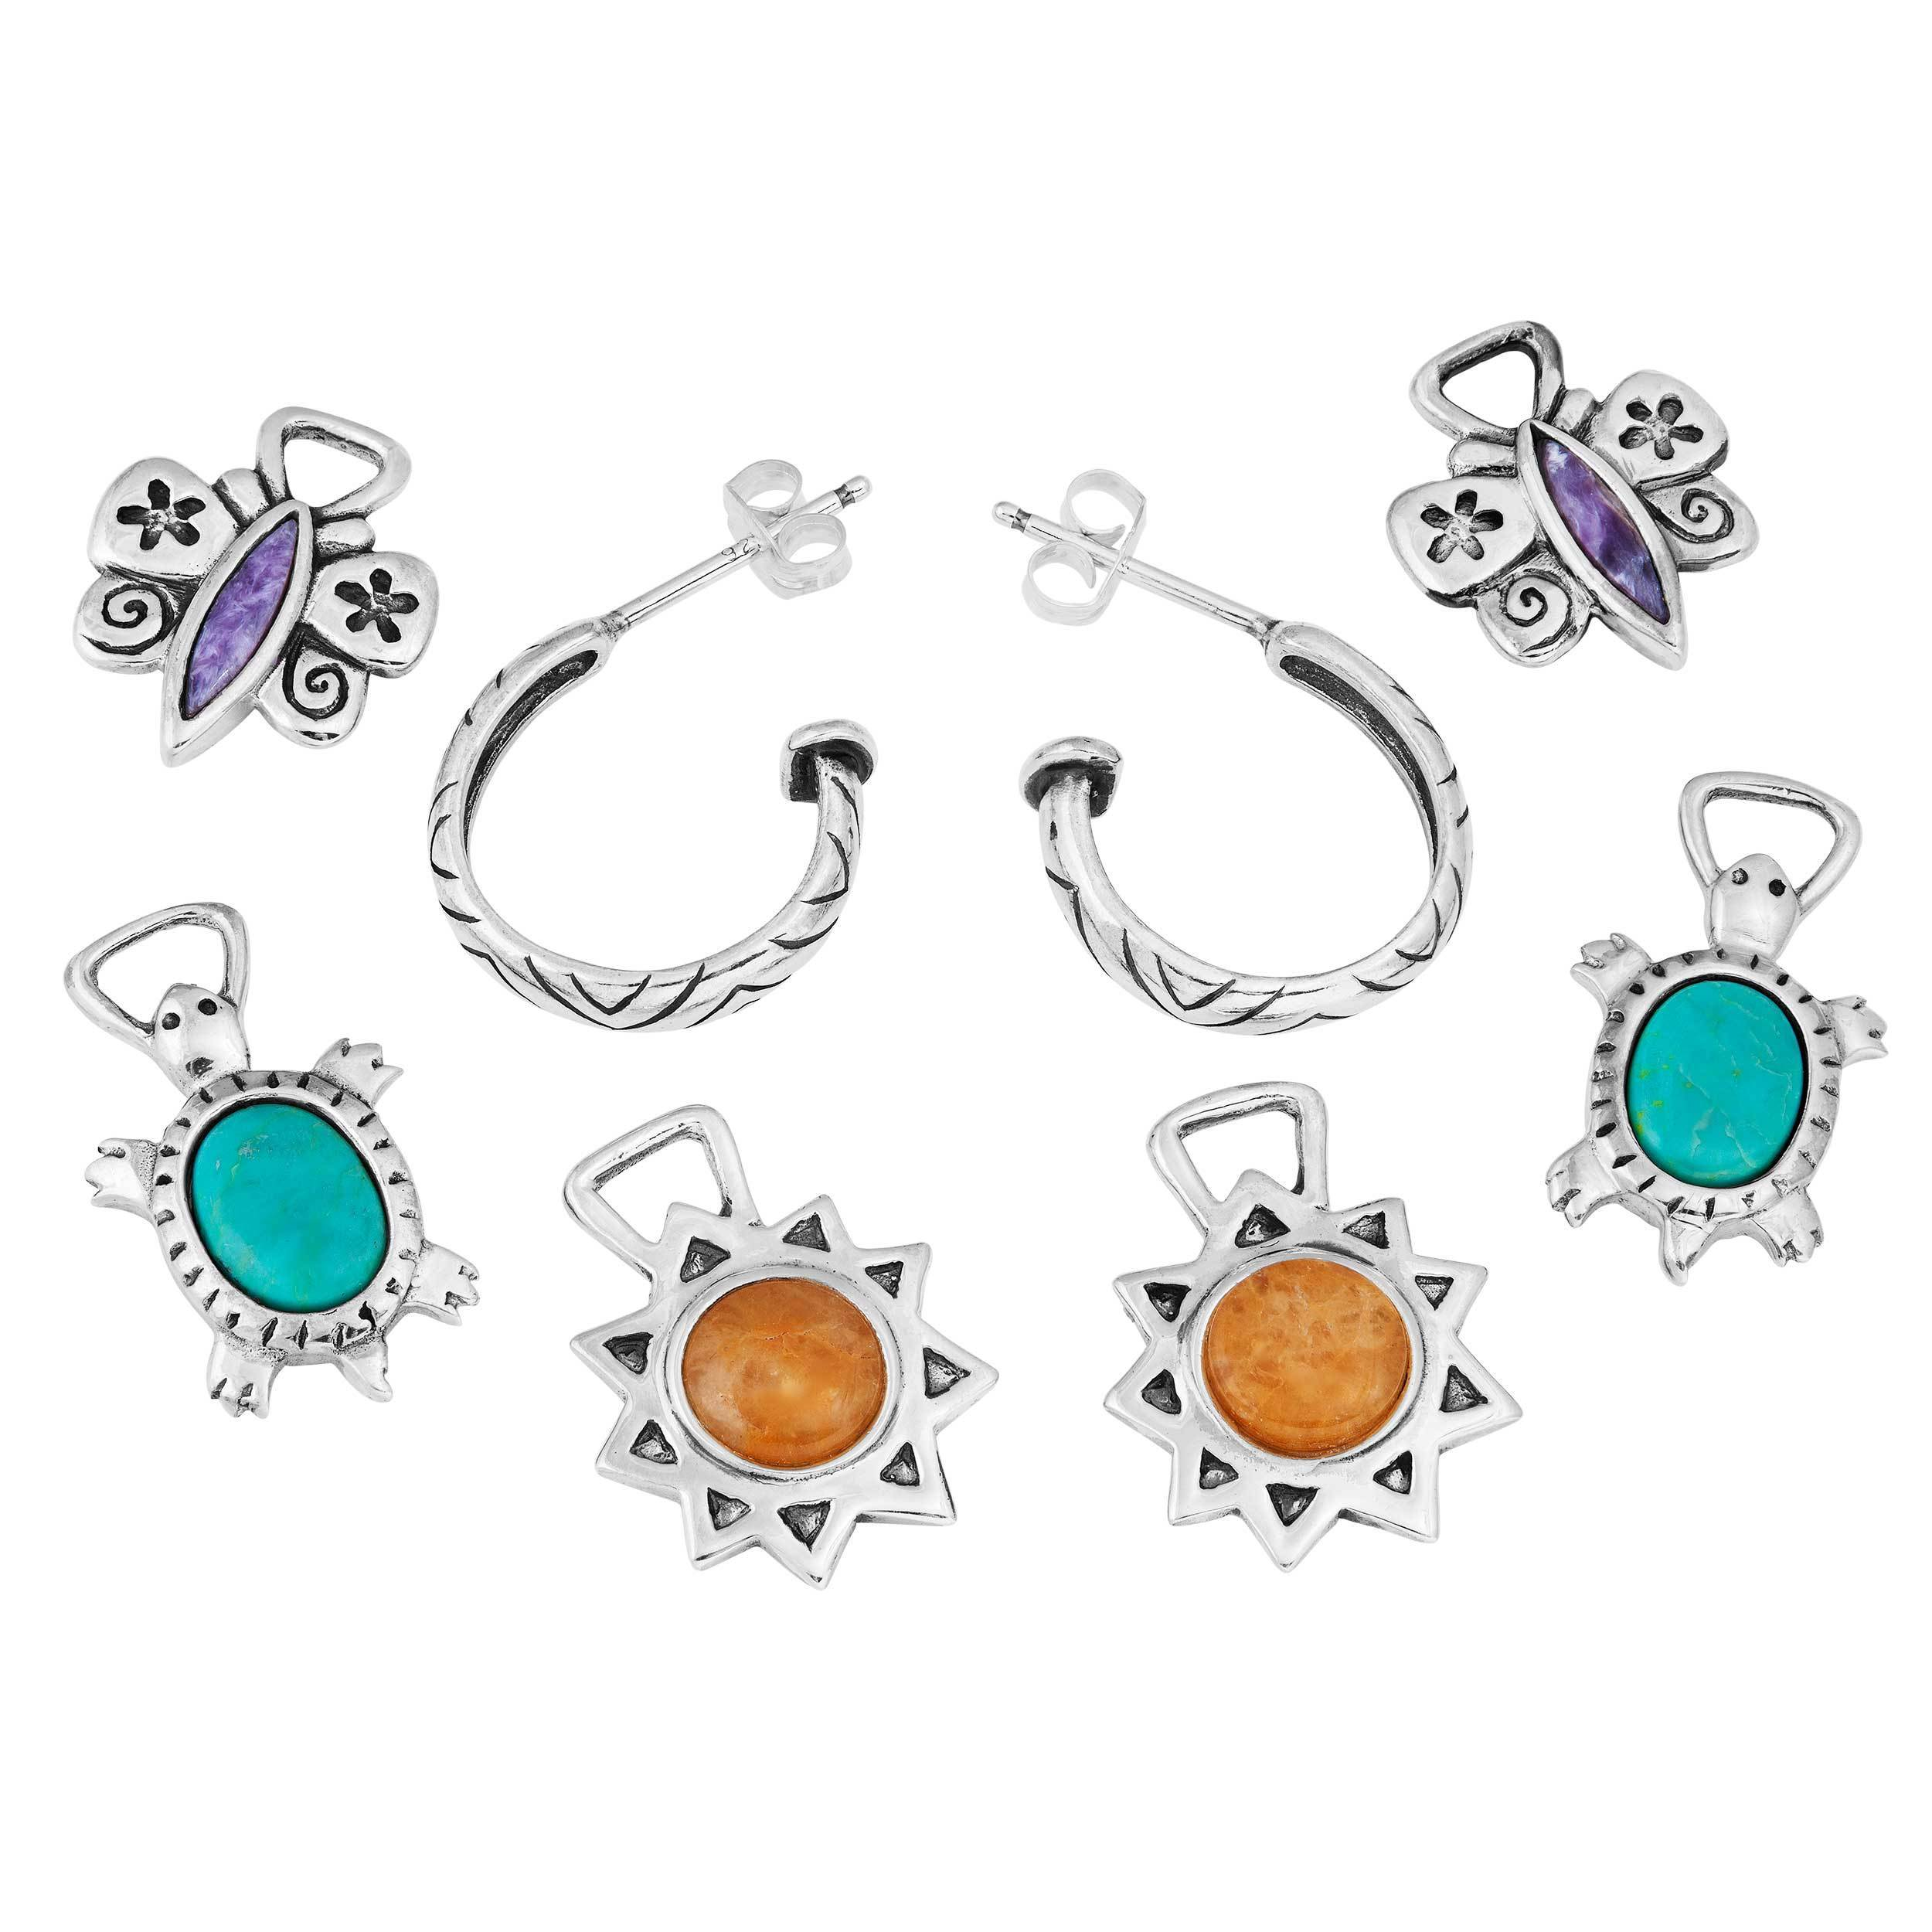 earrings paige mini products rose detachable interchangeable with cut earring ct stone